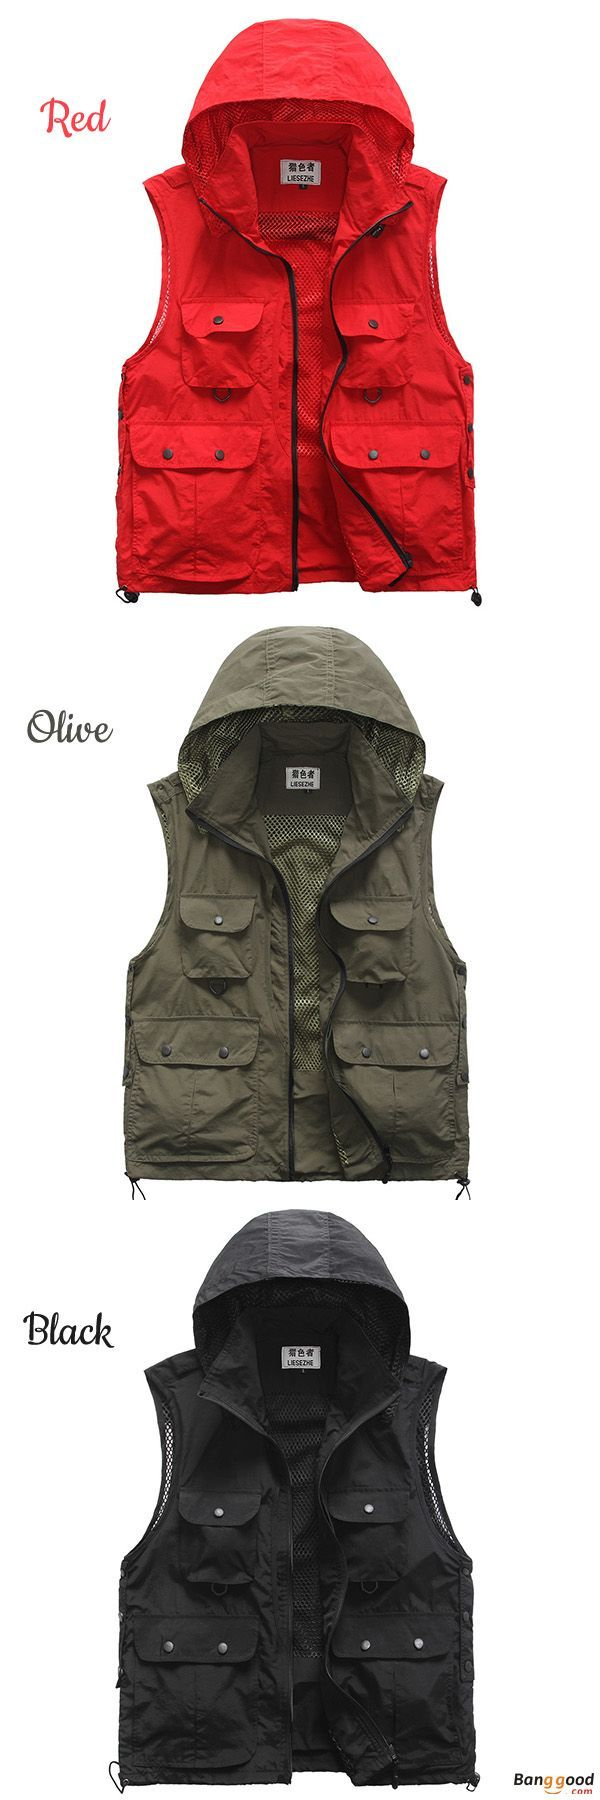 US$36.16 + Free Shipping. Outdoor Vest, Quick Dry  Vest, Multi Pockets  Vest, Detachable  Vest, Hood Photography Vest, Work Clothes. Material: Polyester. Color: Red, Black, Green. >>> To View Further, Visit Now. #vestswomensoutfits